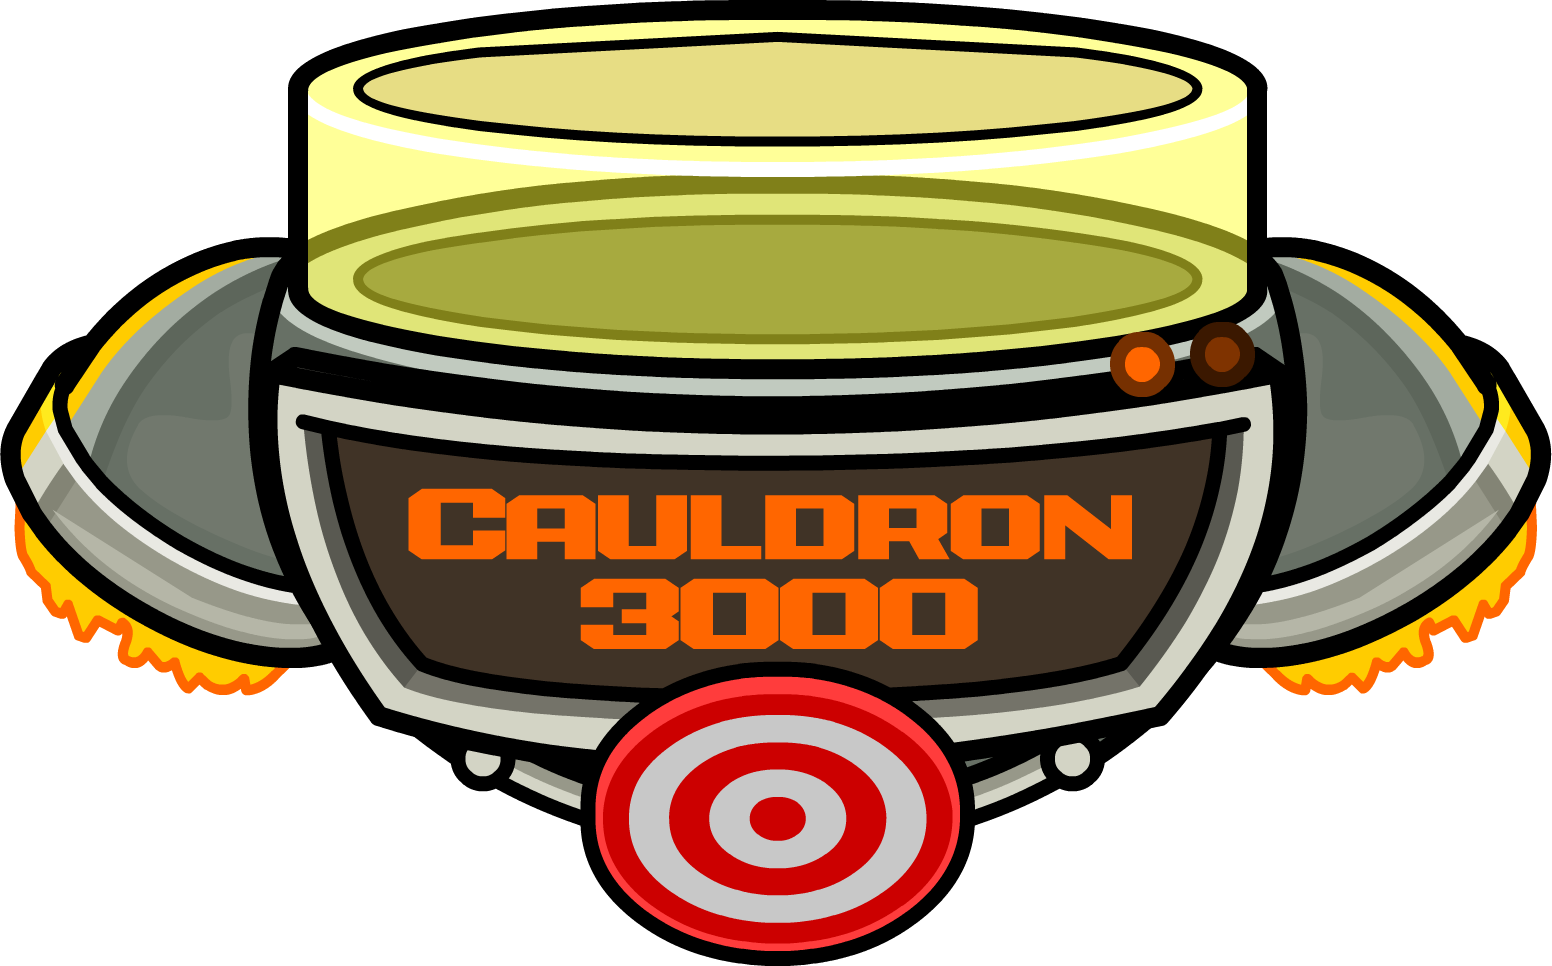 Cauldron 3000